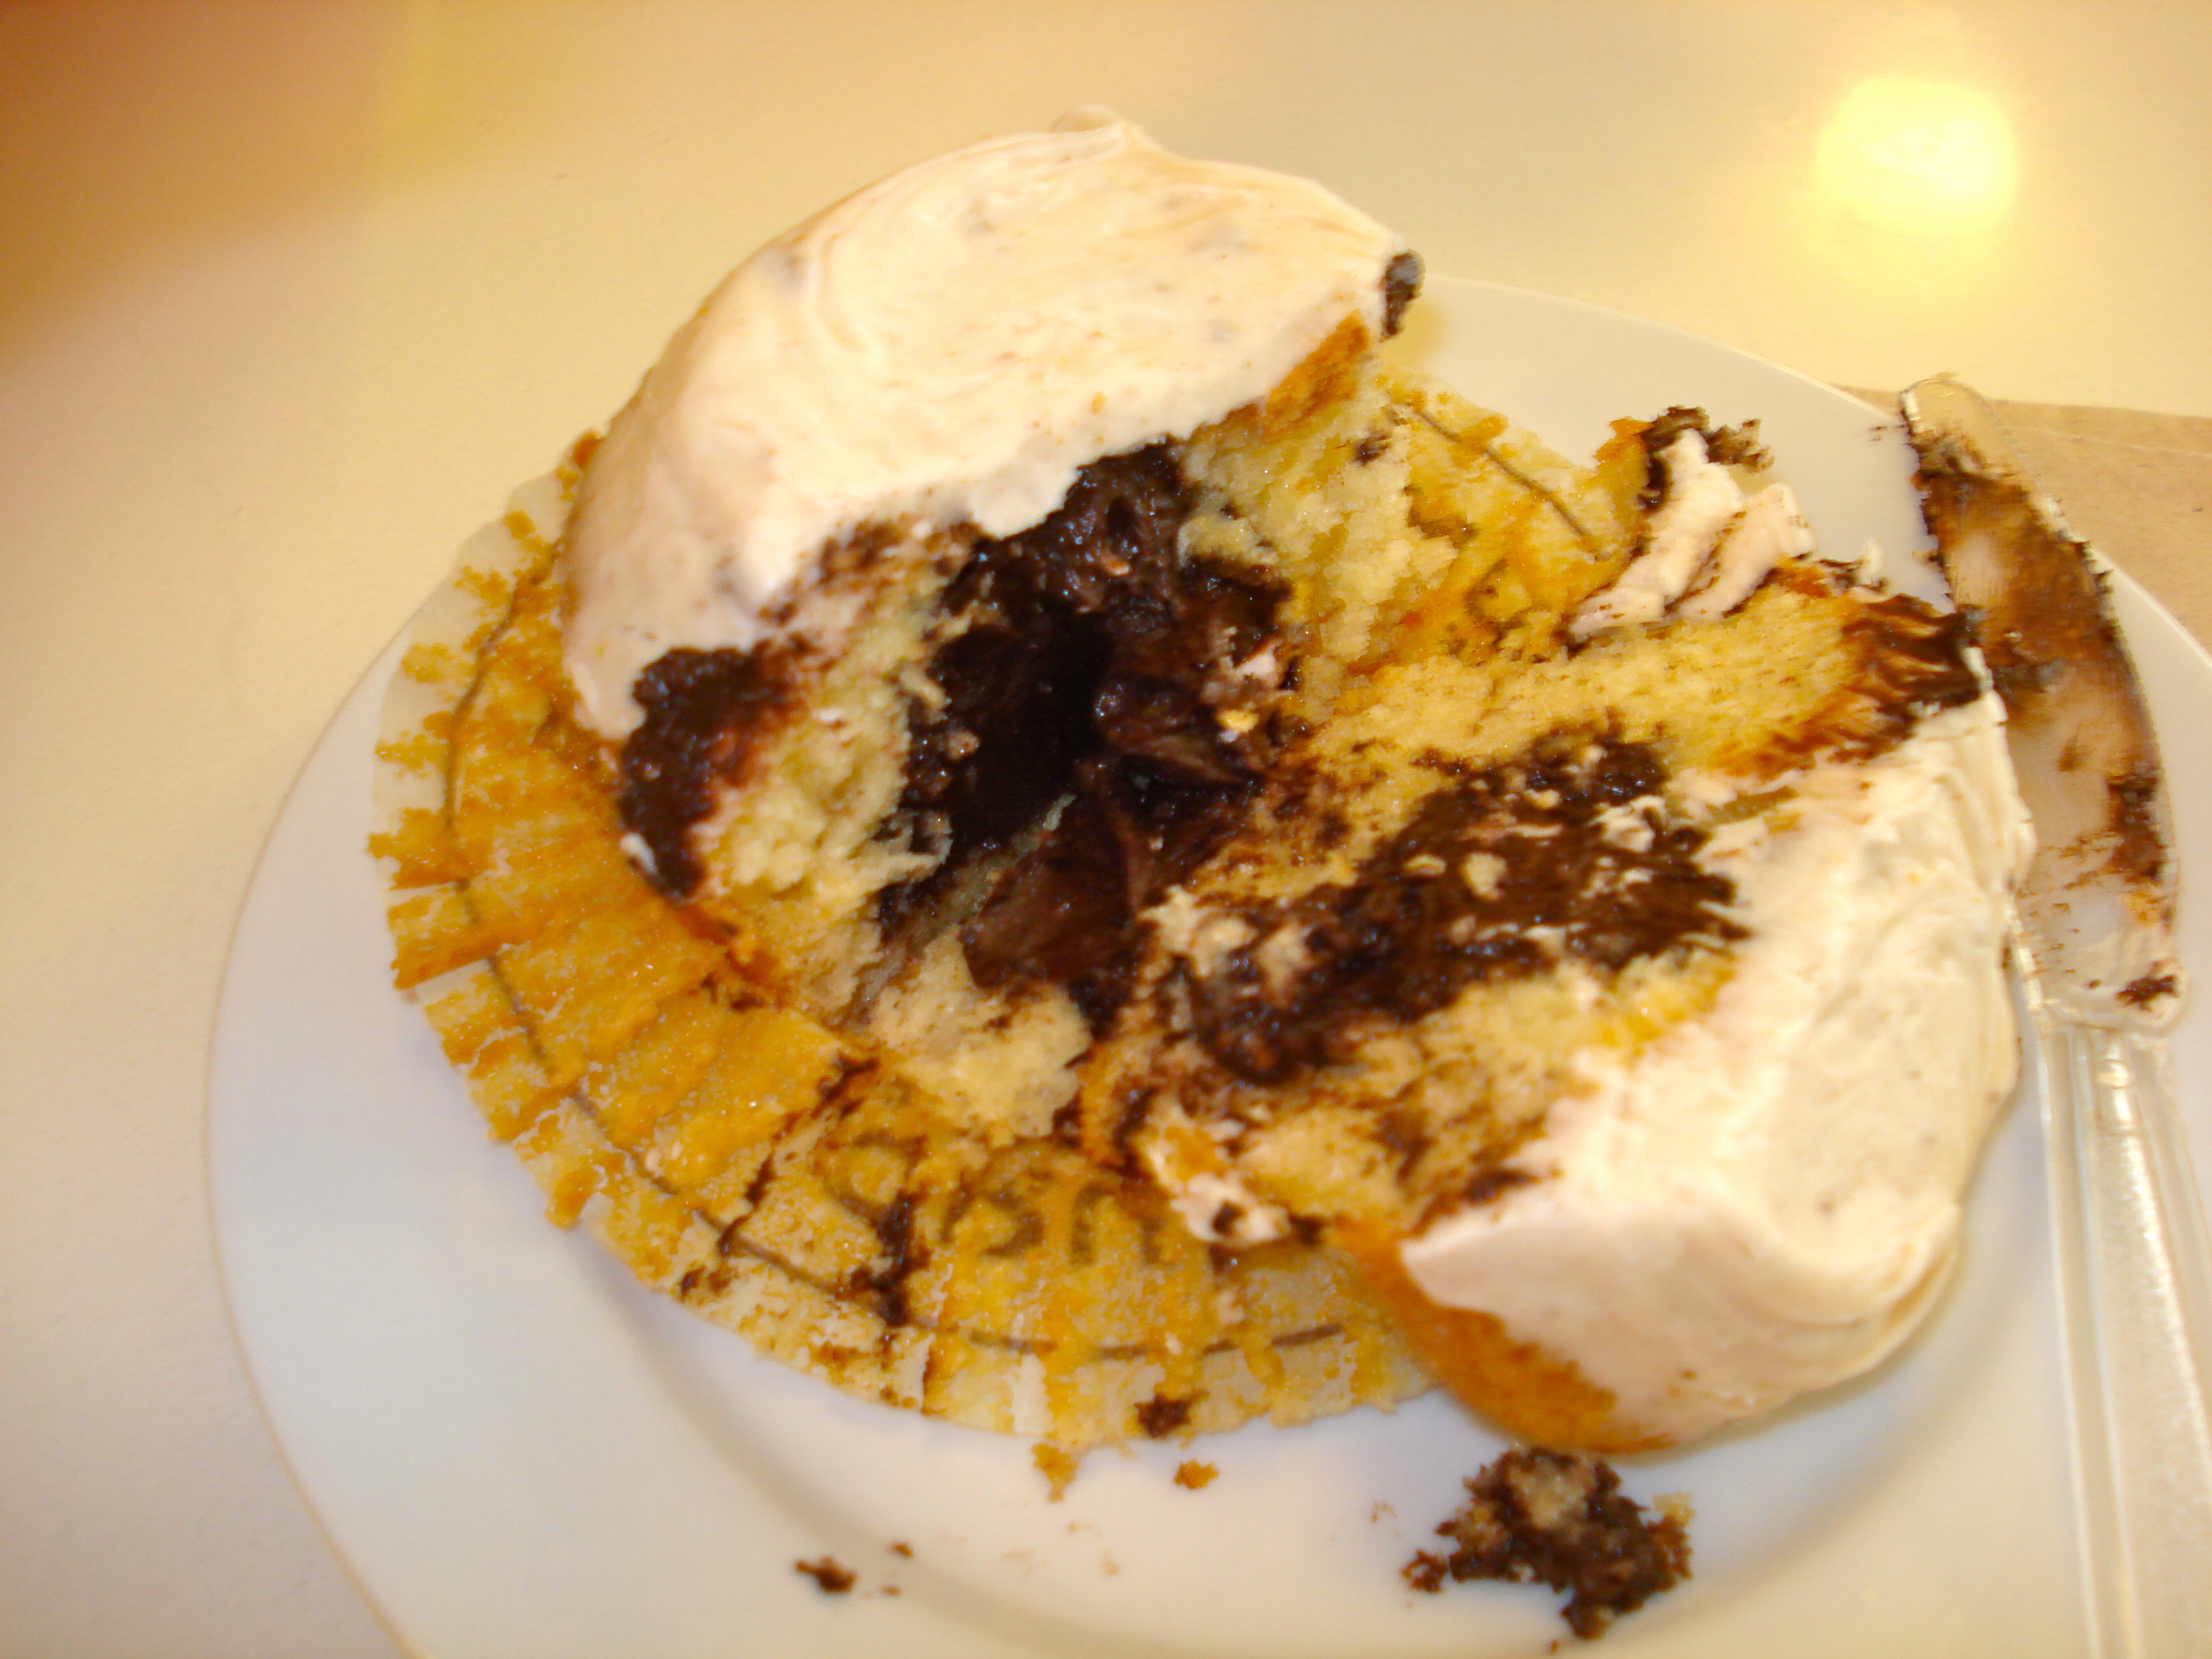 The inside of the cookie-dough cupcake, which had chocolate frosting.  Win.